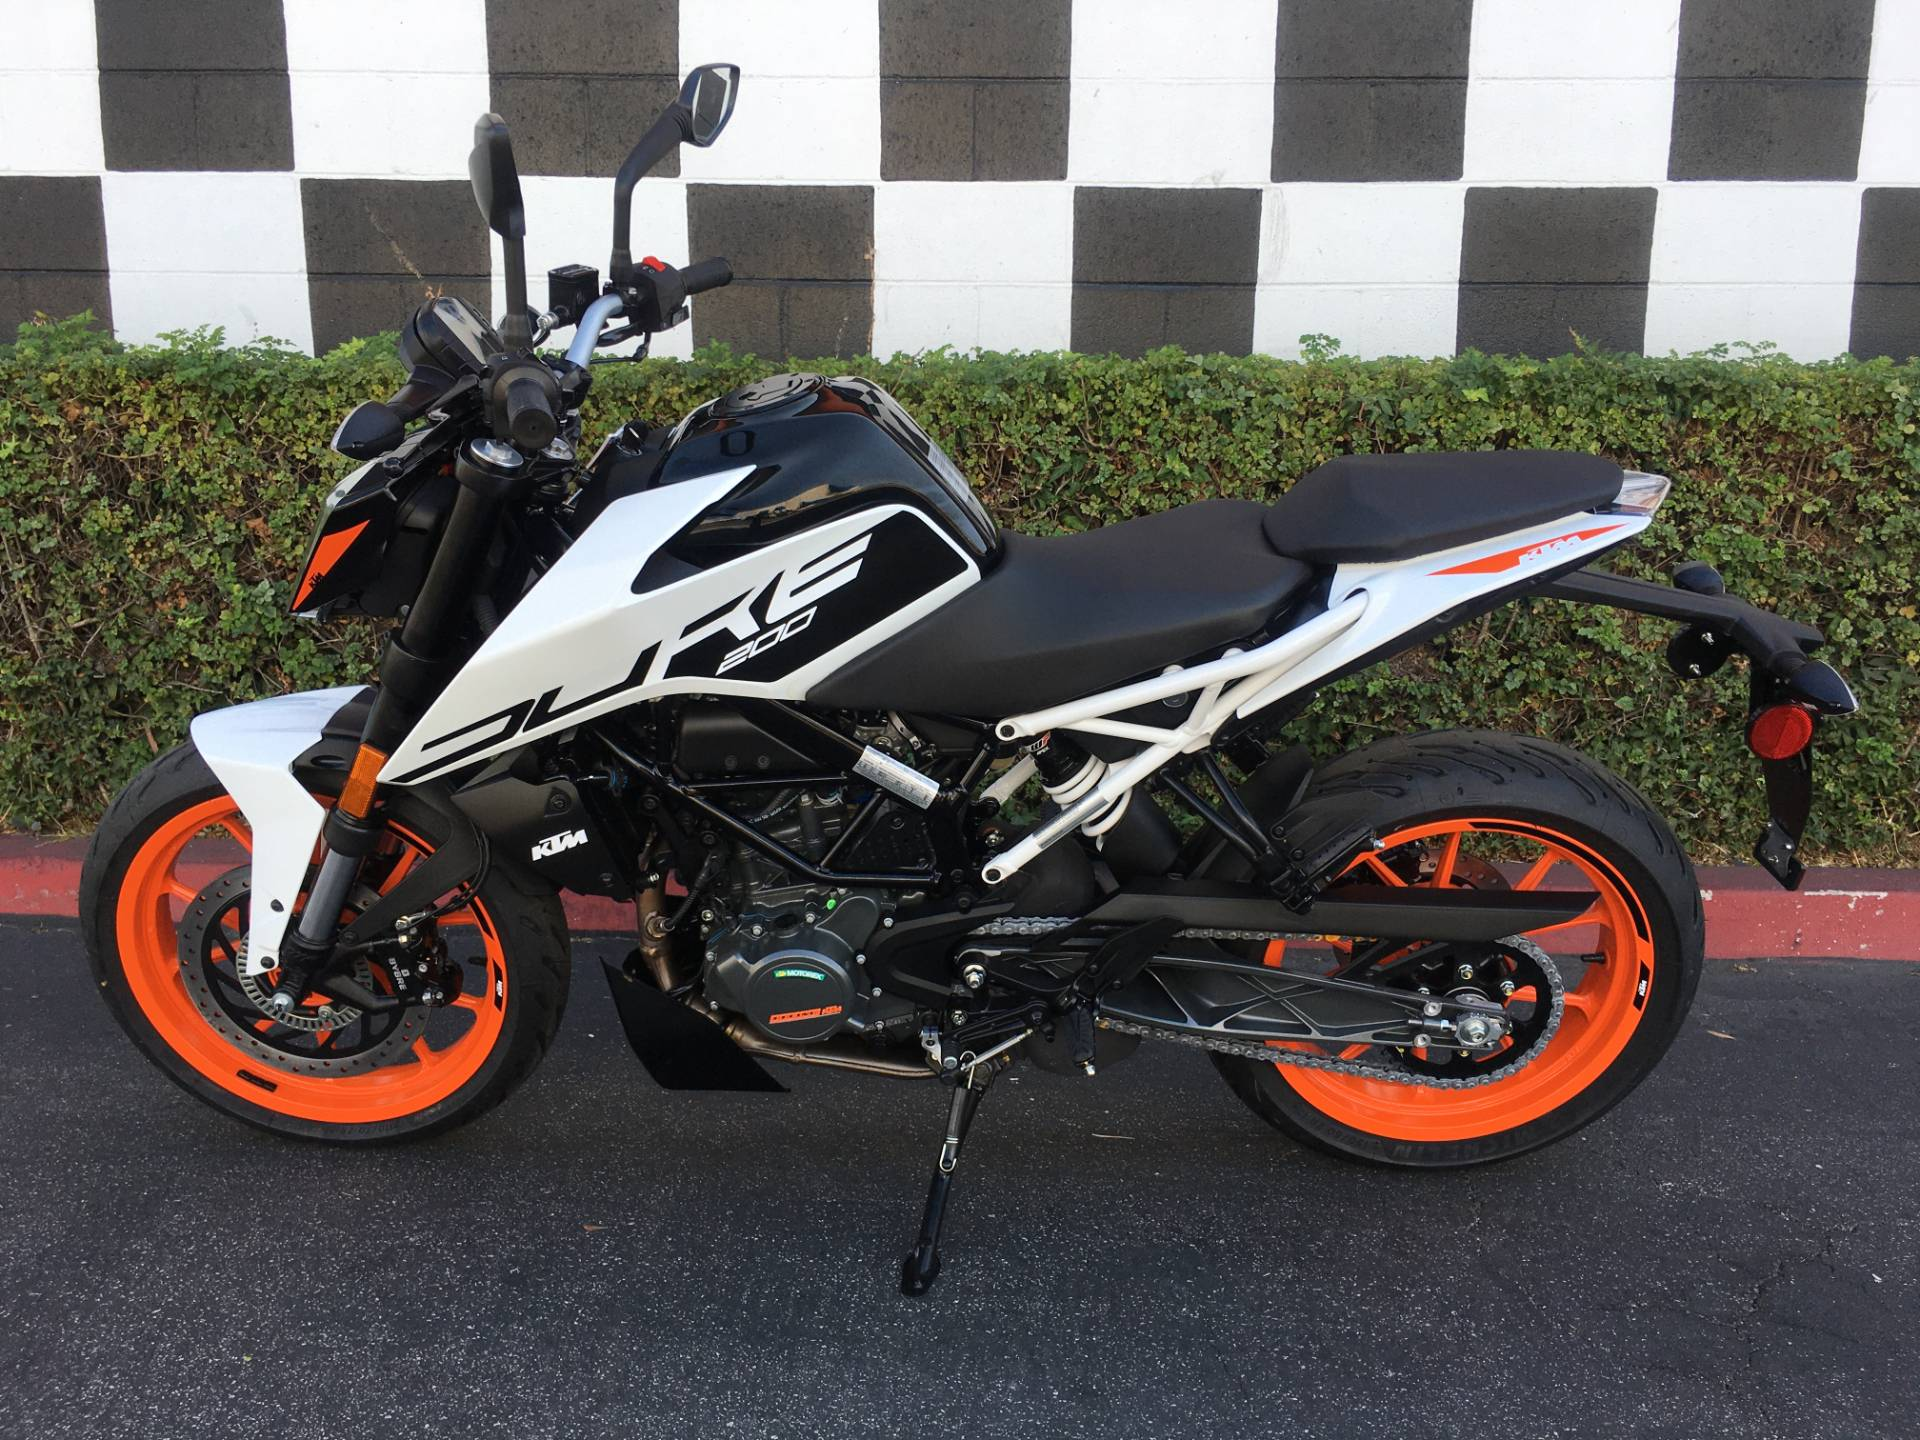 2020 KTM 200 Duke in Costa Mesa, California - Photo 2